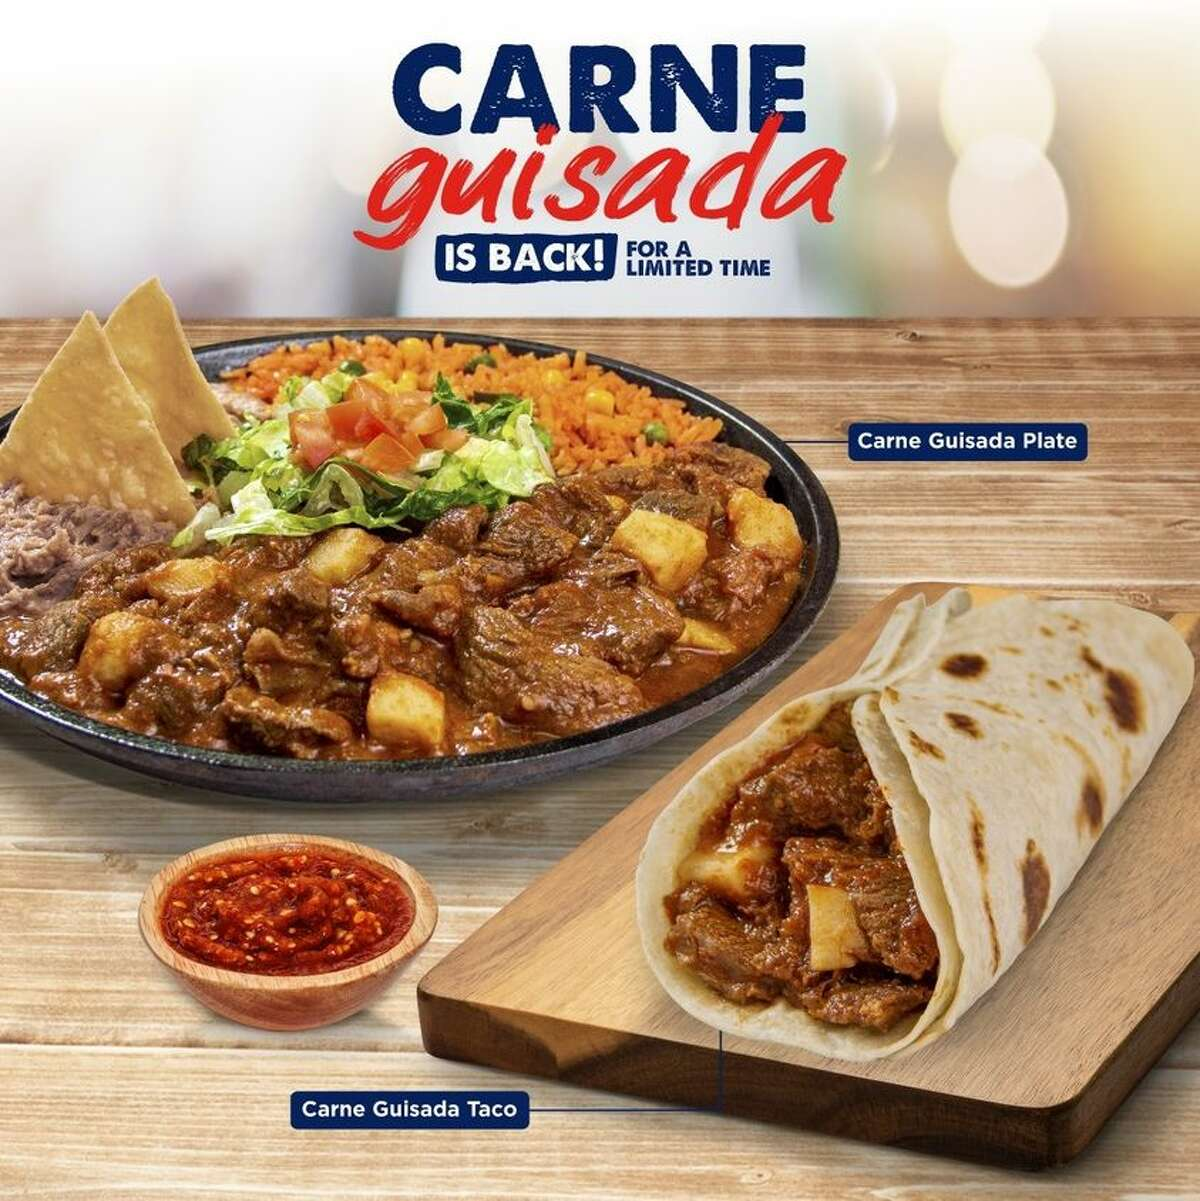 Taco Palenque posted this photo, showing carne guisada sans olives, after hearing feedback from San Antonio.